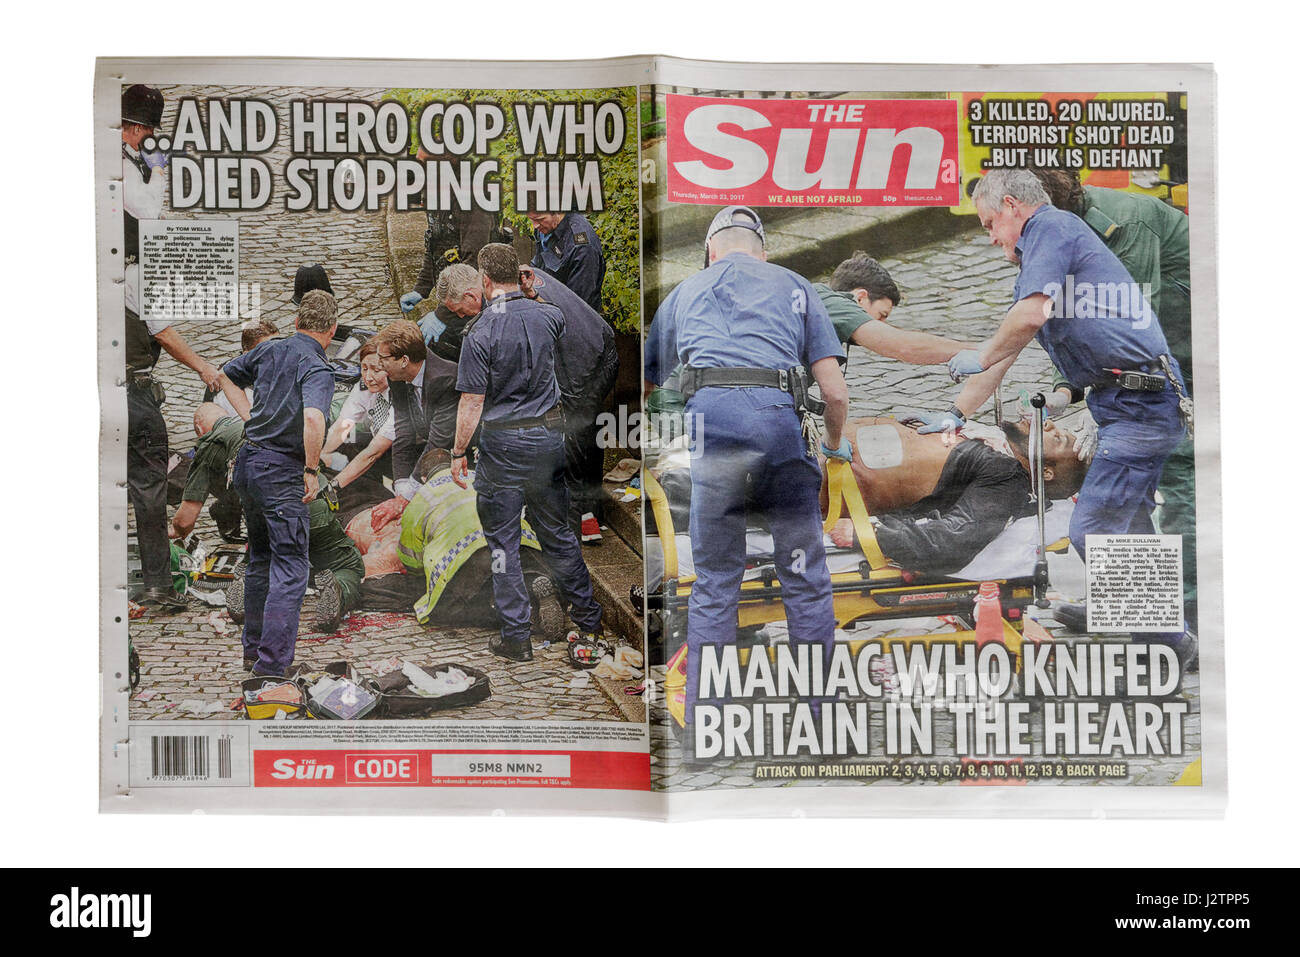 The headlines from The Sun newspaper from 23rd March 2017 after the Westminster Bridge terrorist attack in London. - Stock Image